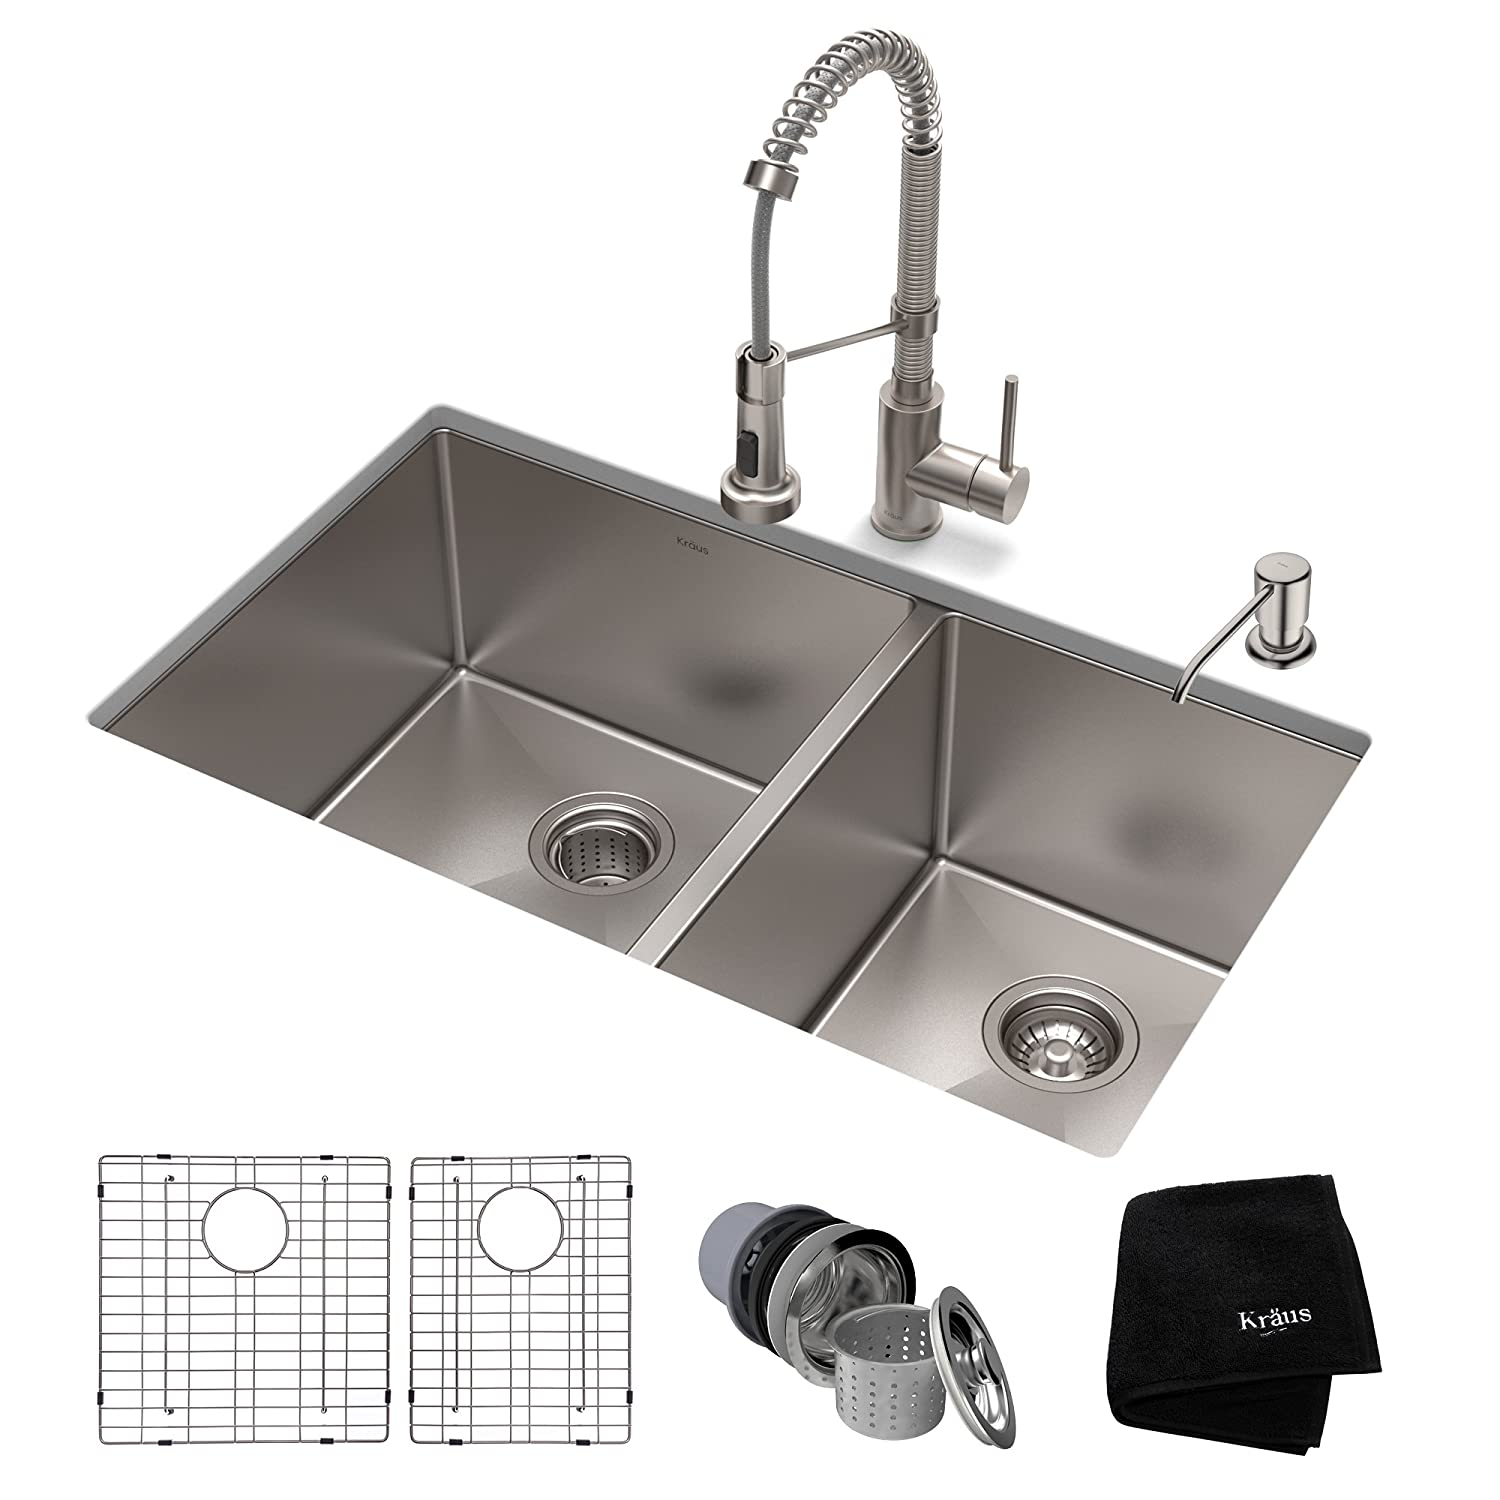 KRAUS KHU103-33-1610-53SS Set with Standart PRO Sink and Bolden Commercial Pull Faucet in Stainless Steel Kitchen Sink & Faucet Combo 33 Inch